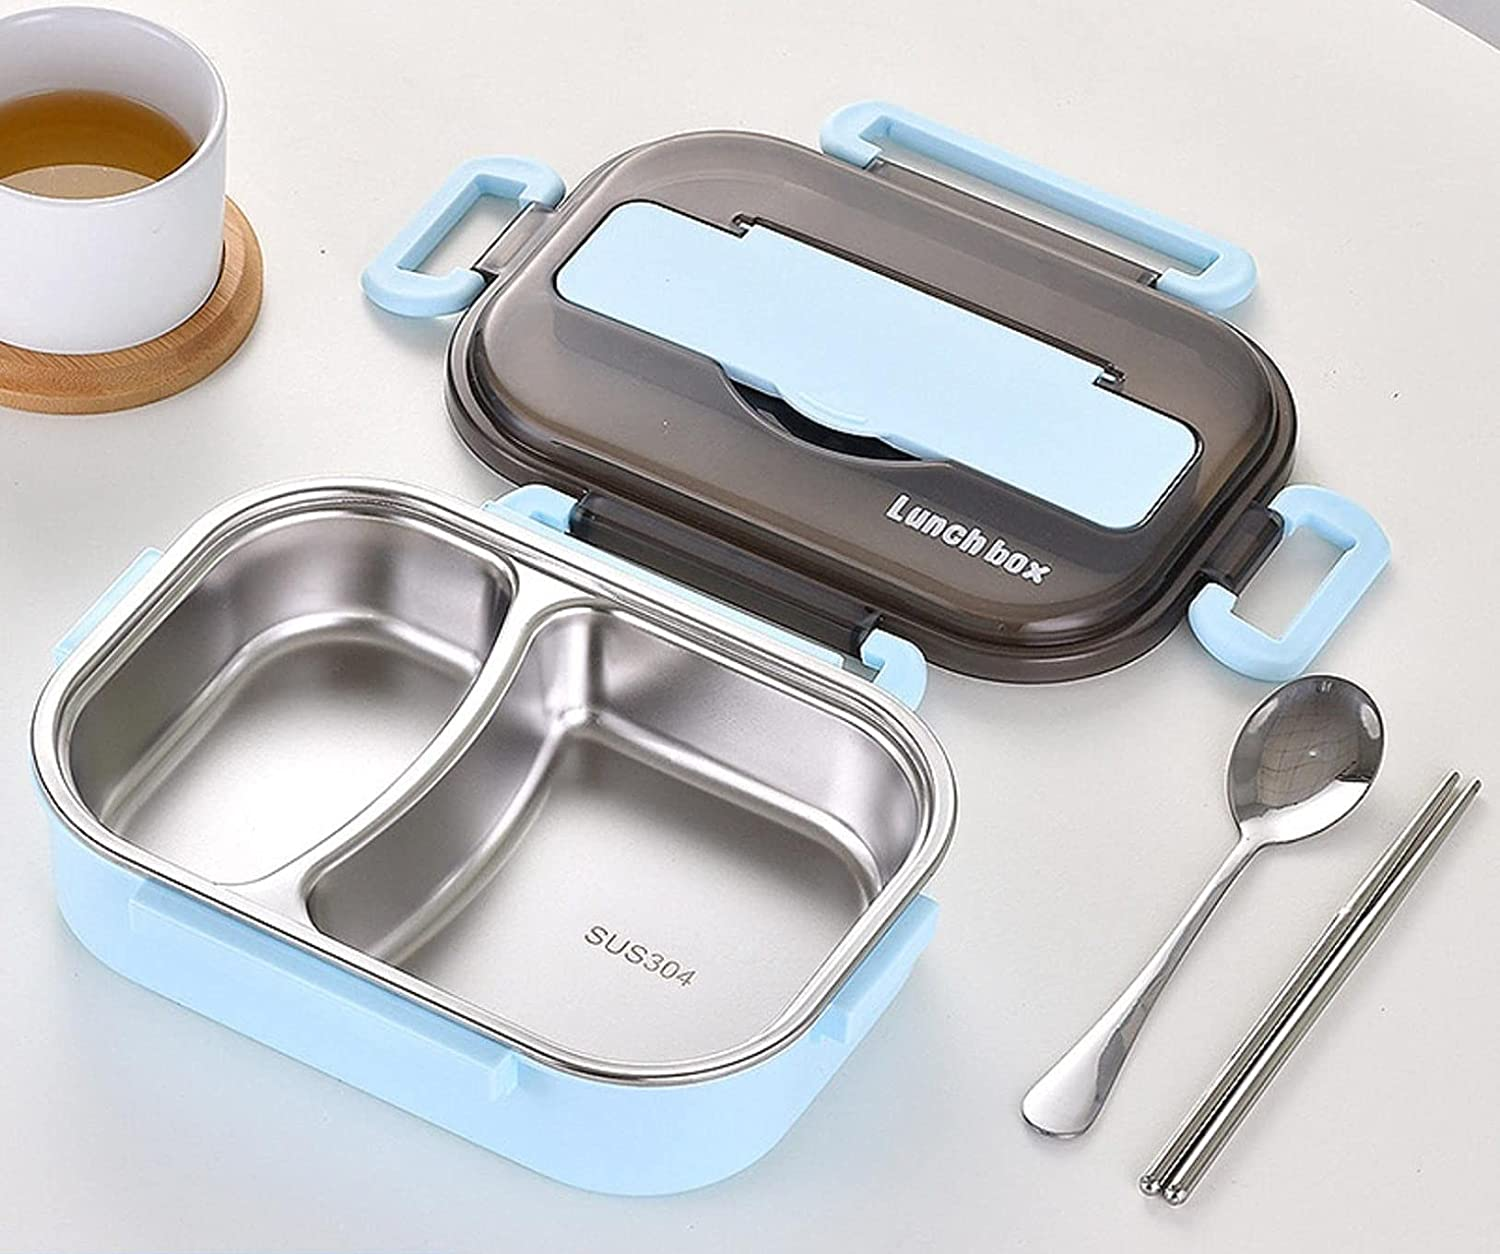 OLOPE Lunch Box,Bento Boxes for Student, Thermal Insulation Bent